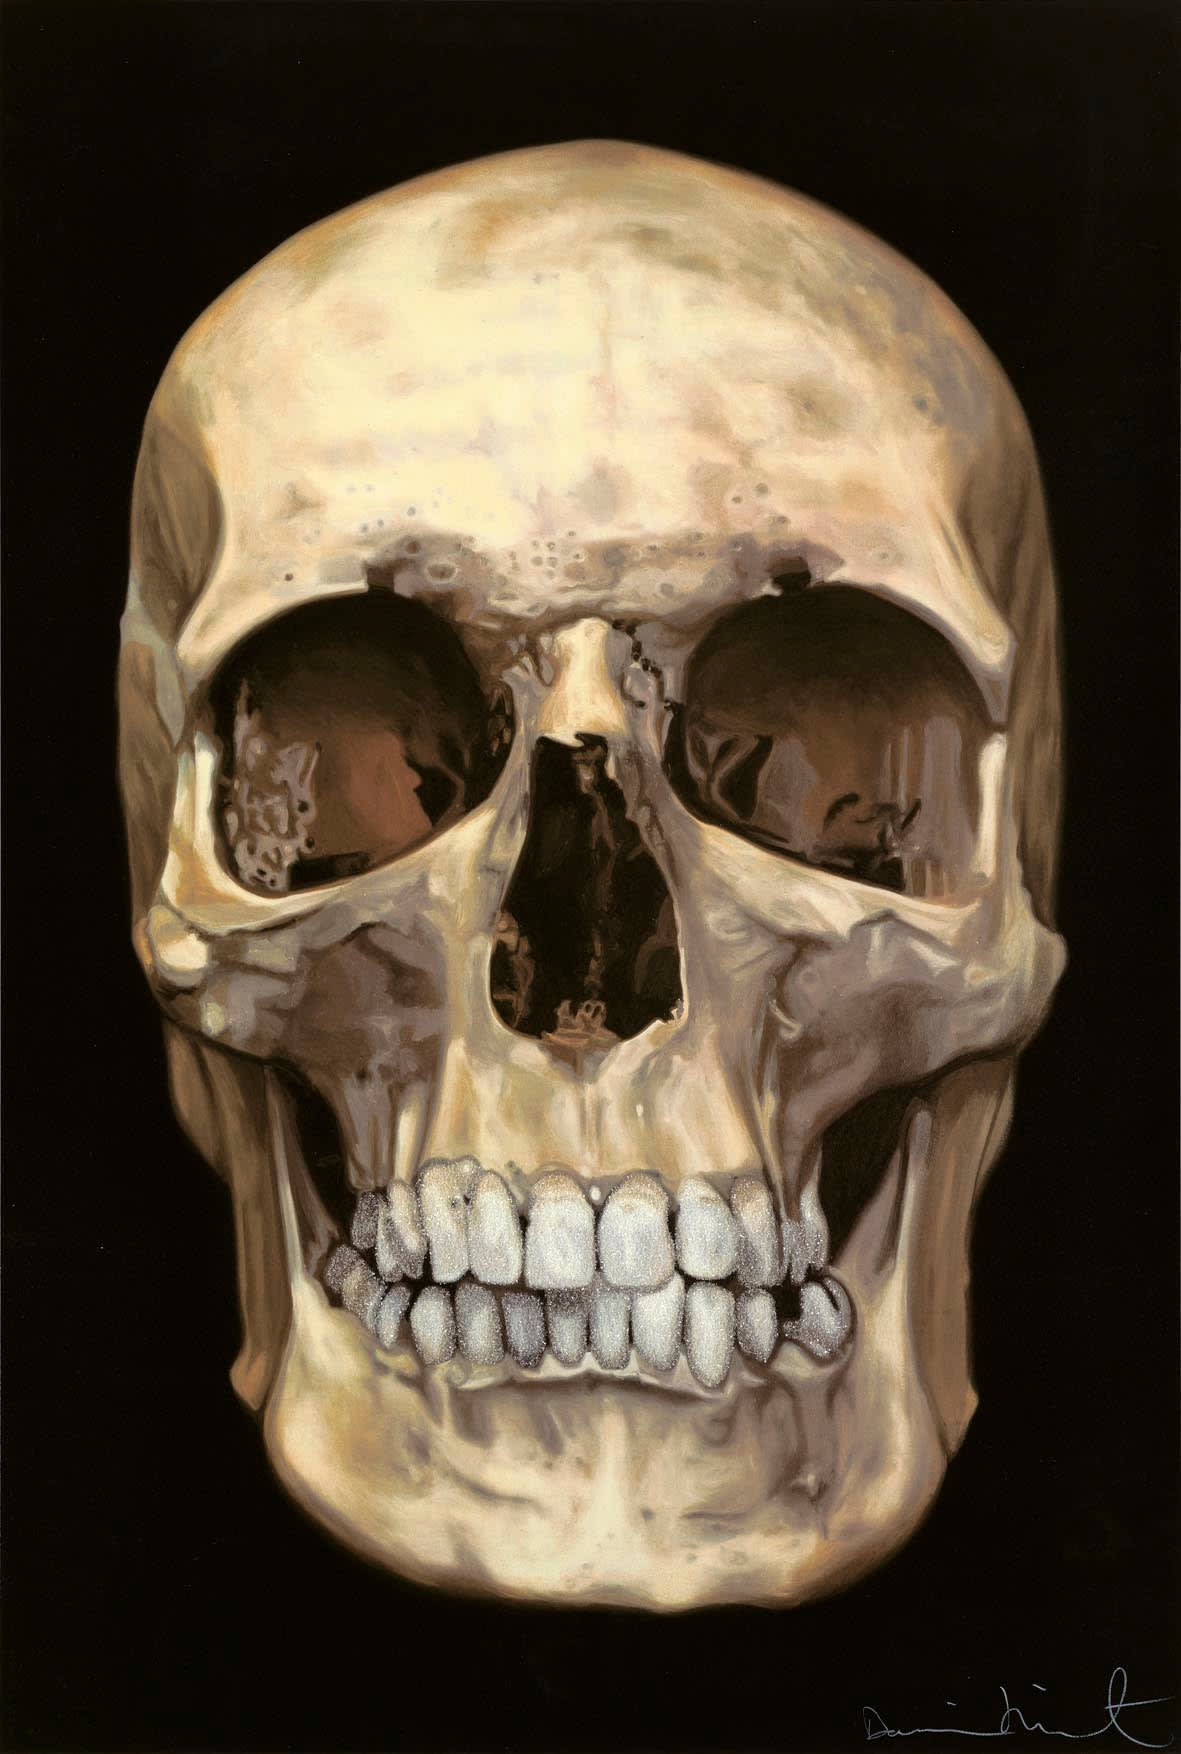 Damien Hirst The Skull Beneath the Skin, 2005 Silkscreen with diamond dust on Somerset satin 410gsm Signed and numbered 100 x 66.7cm Edition of 155